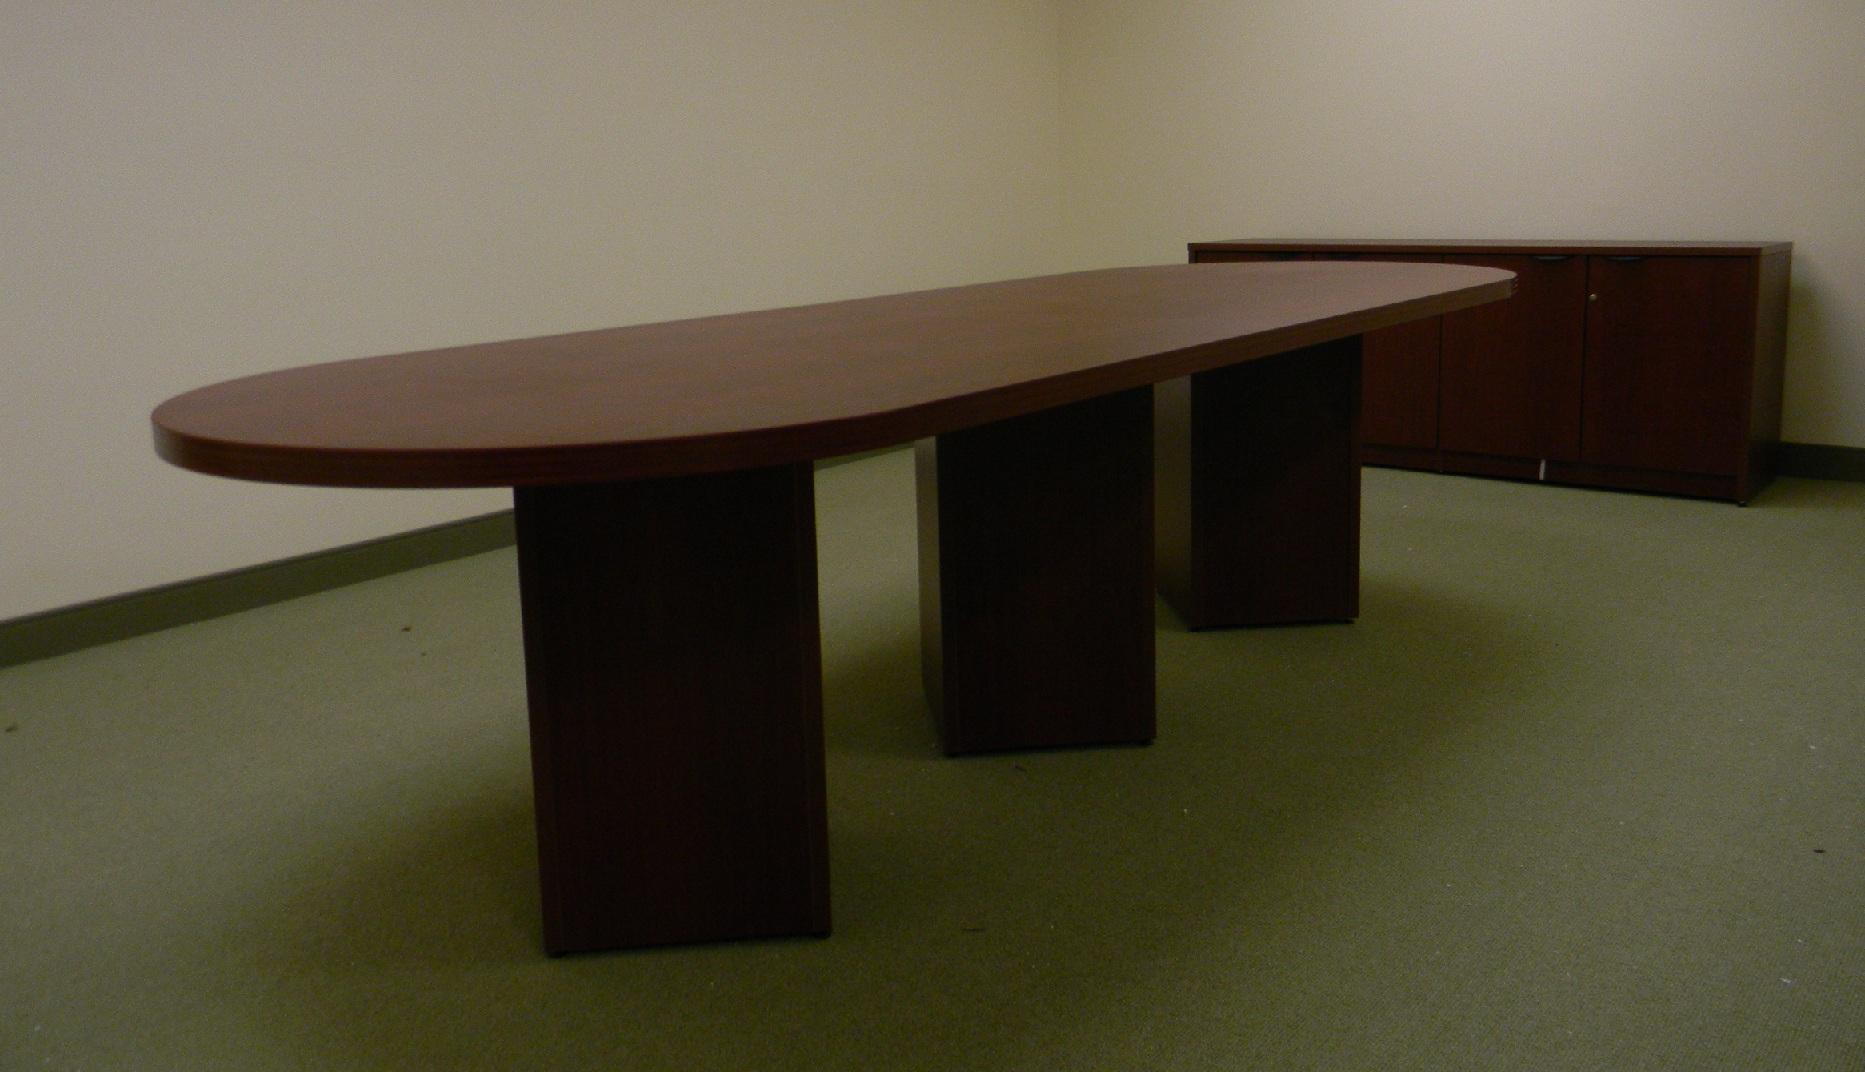 Standard laminate conference table with cube base.